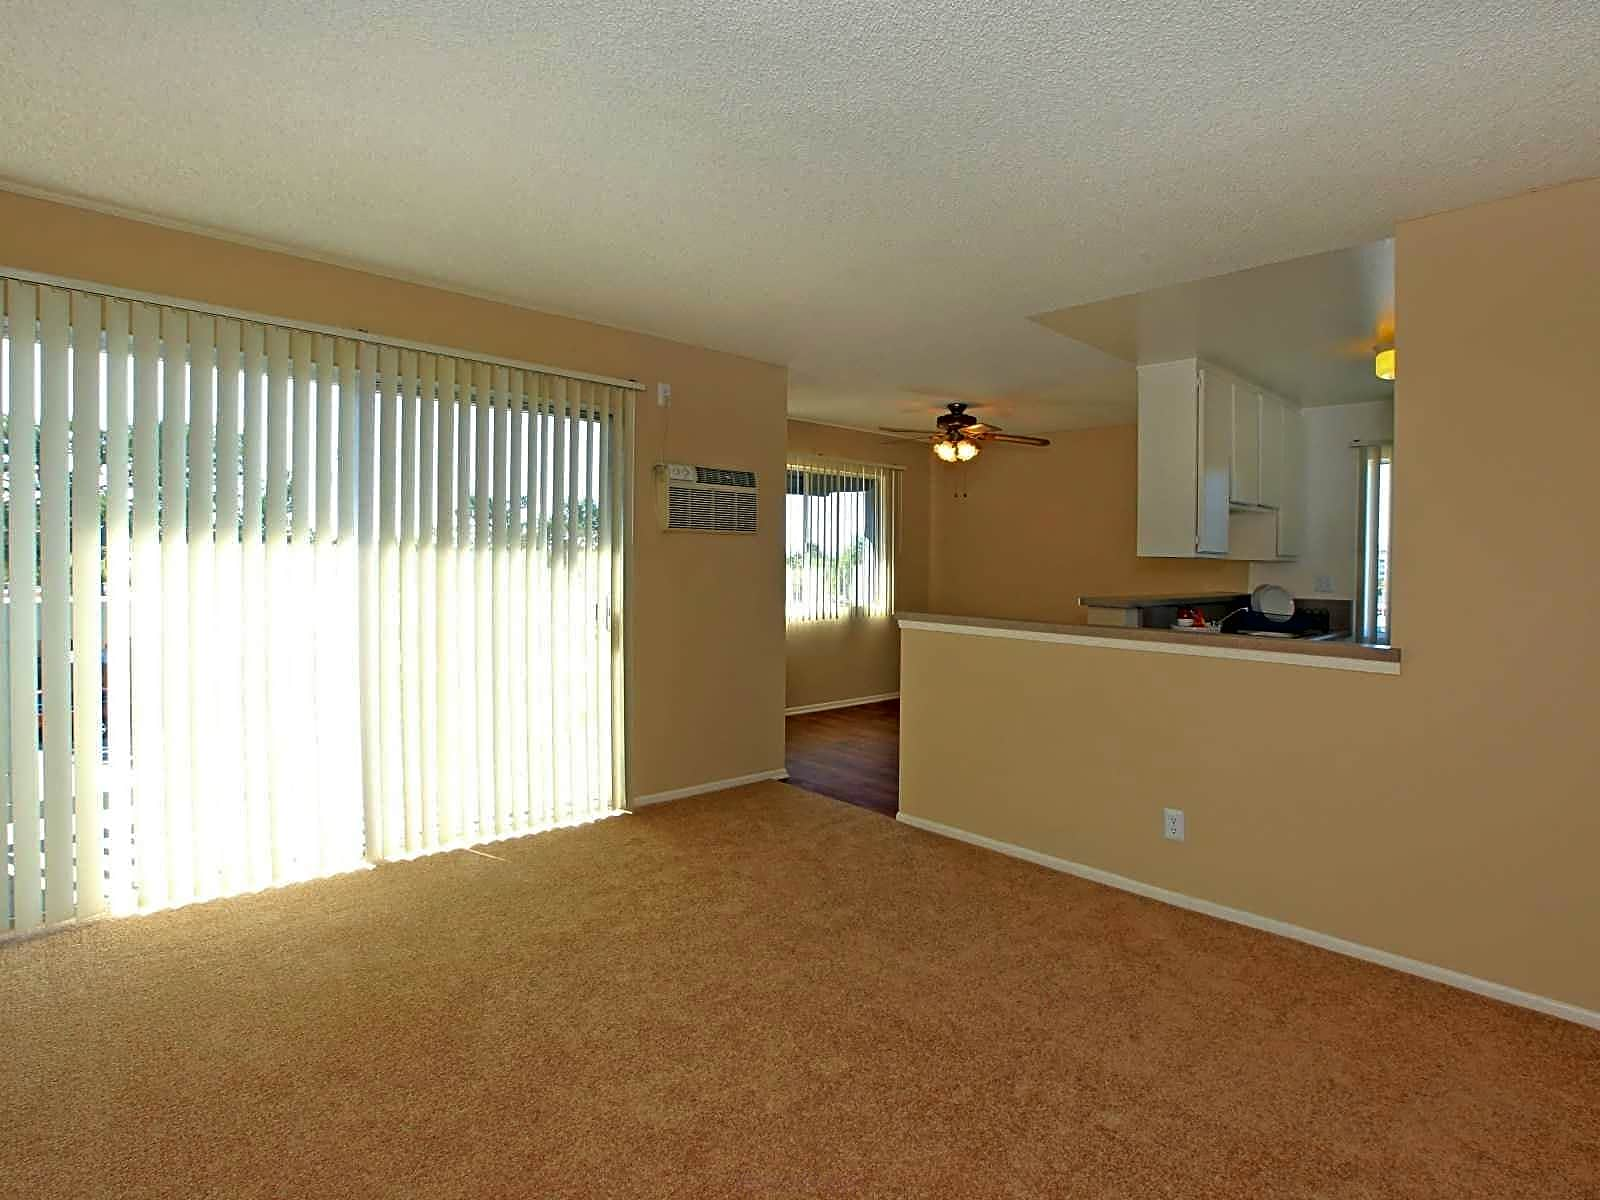 Photo: San Jose Apartment for Rent - $1745.00 / month; 1 Bd & 1 Ba